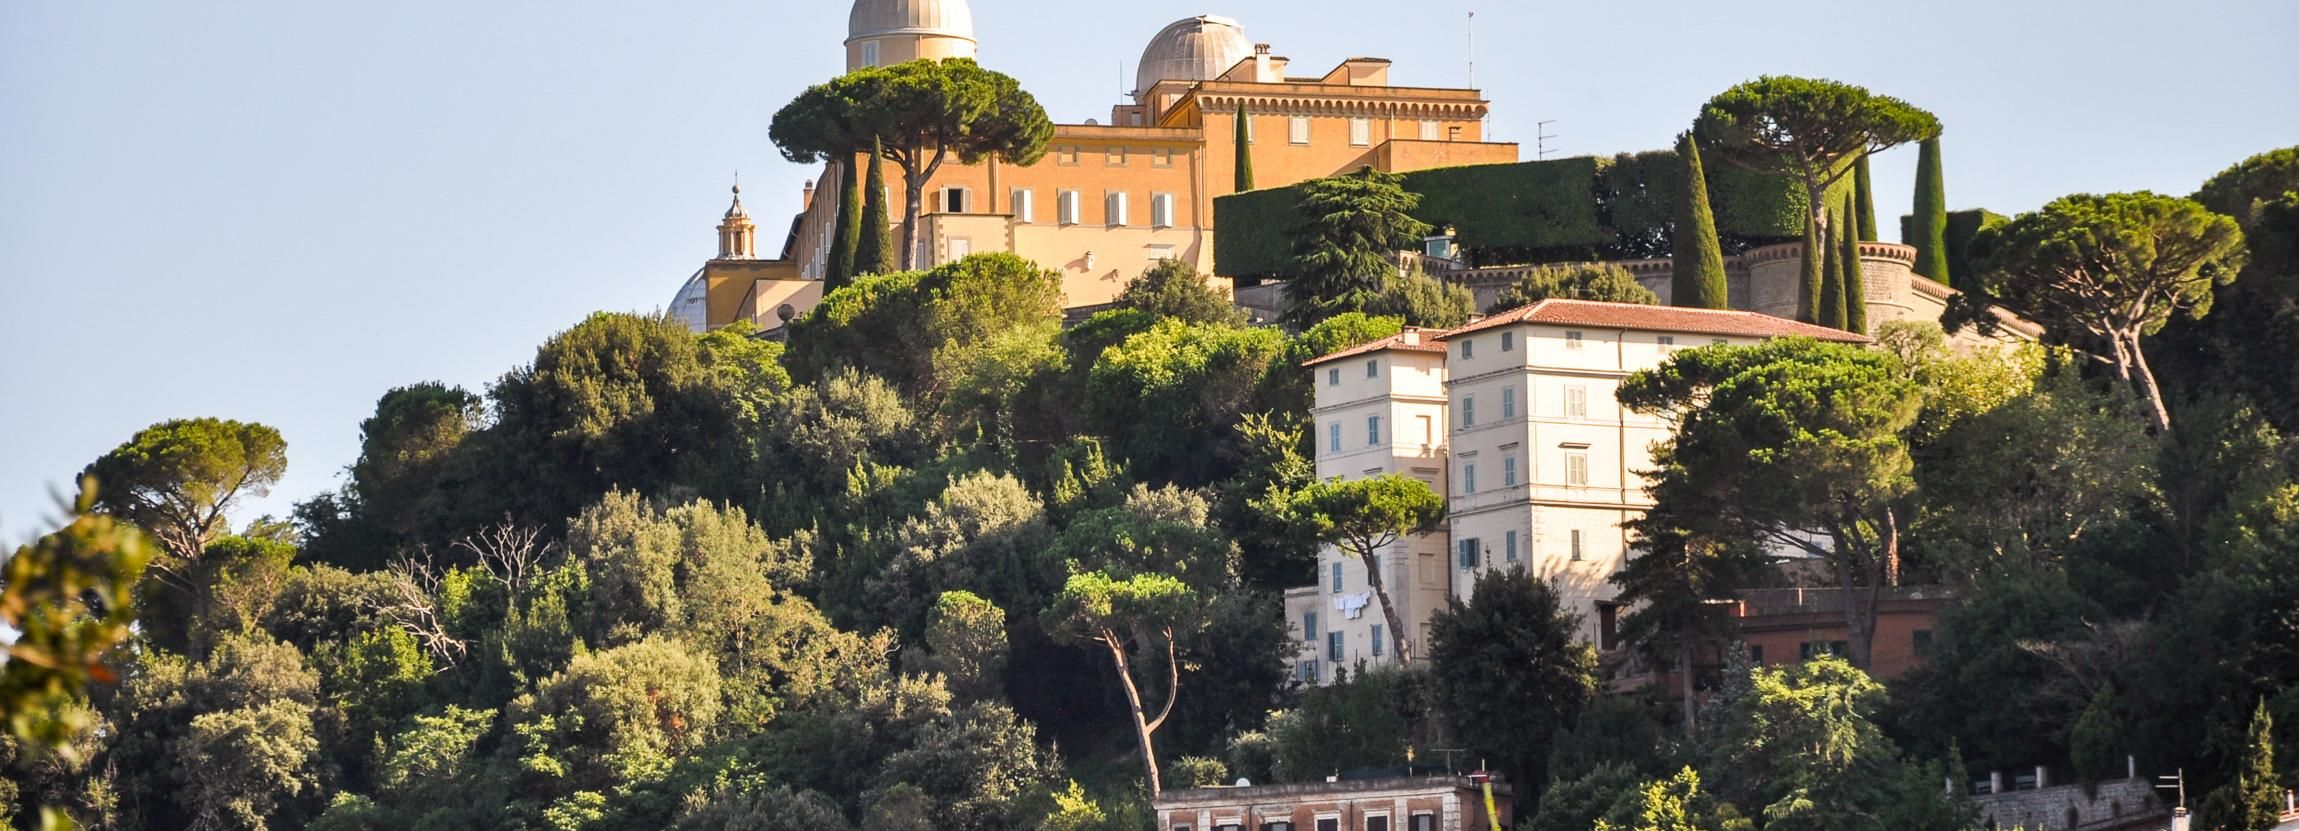 Rome: Half-Day Trip to Pope's Summer Residence